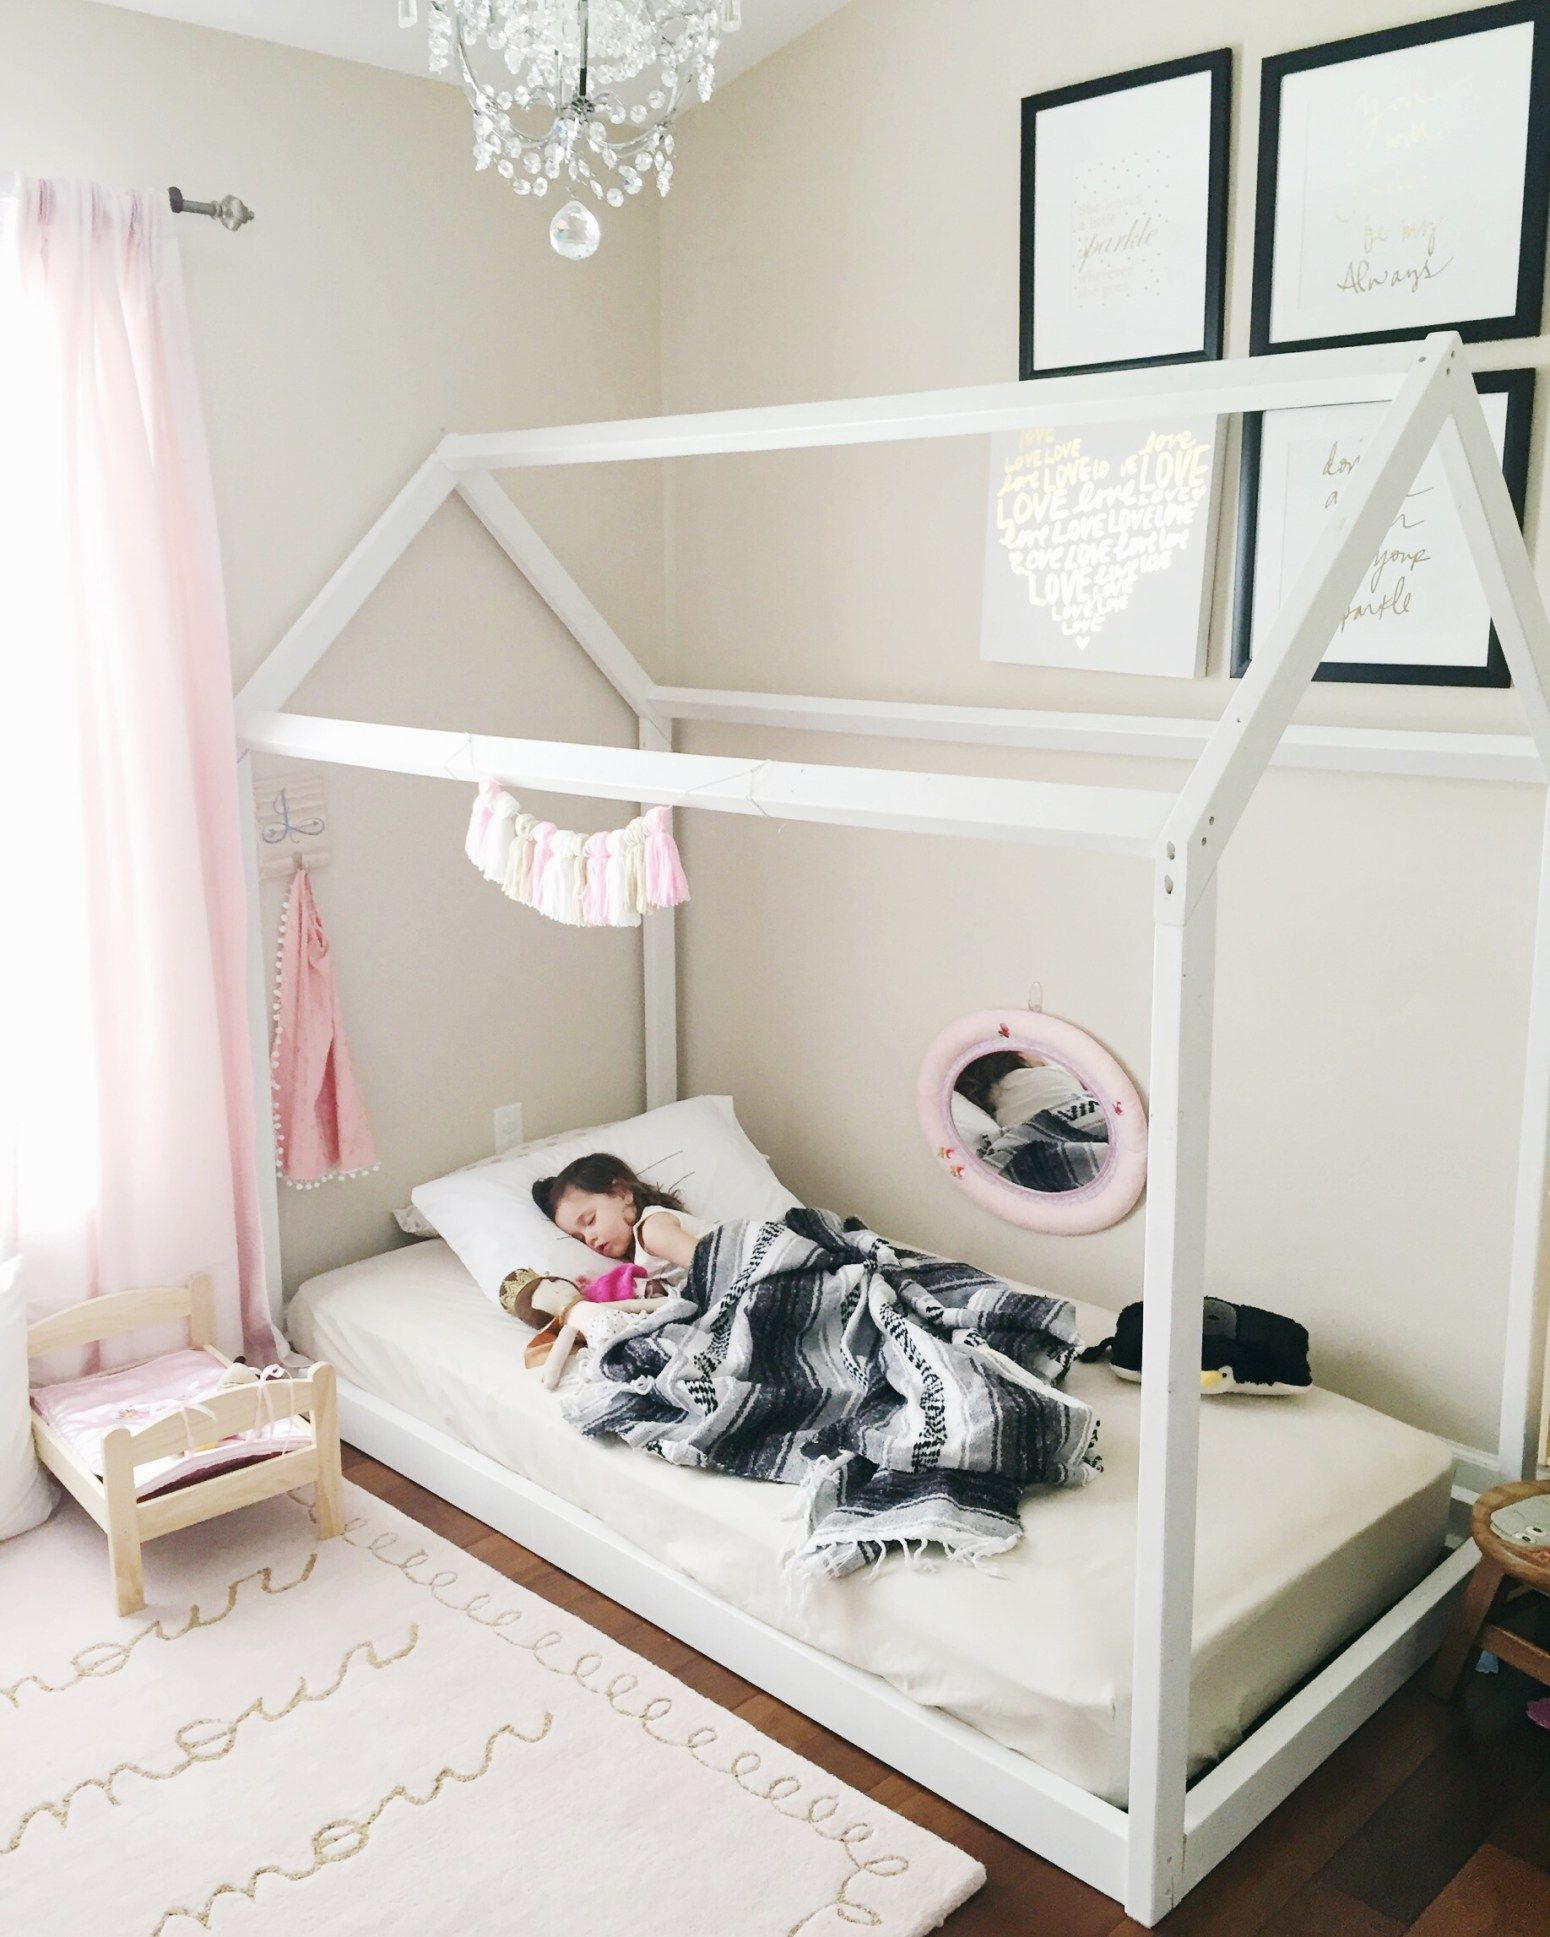 Diy House Frame Bed House Frame Bed Toddler House Bed Diy